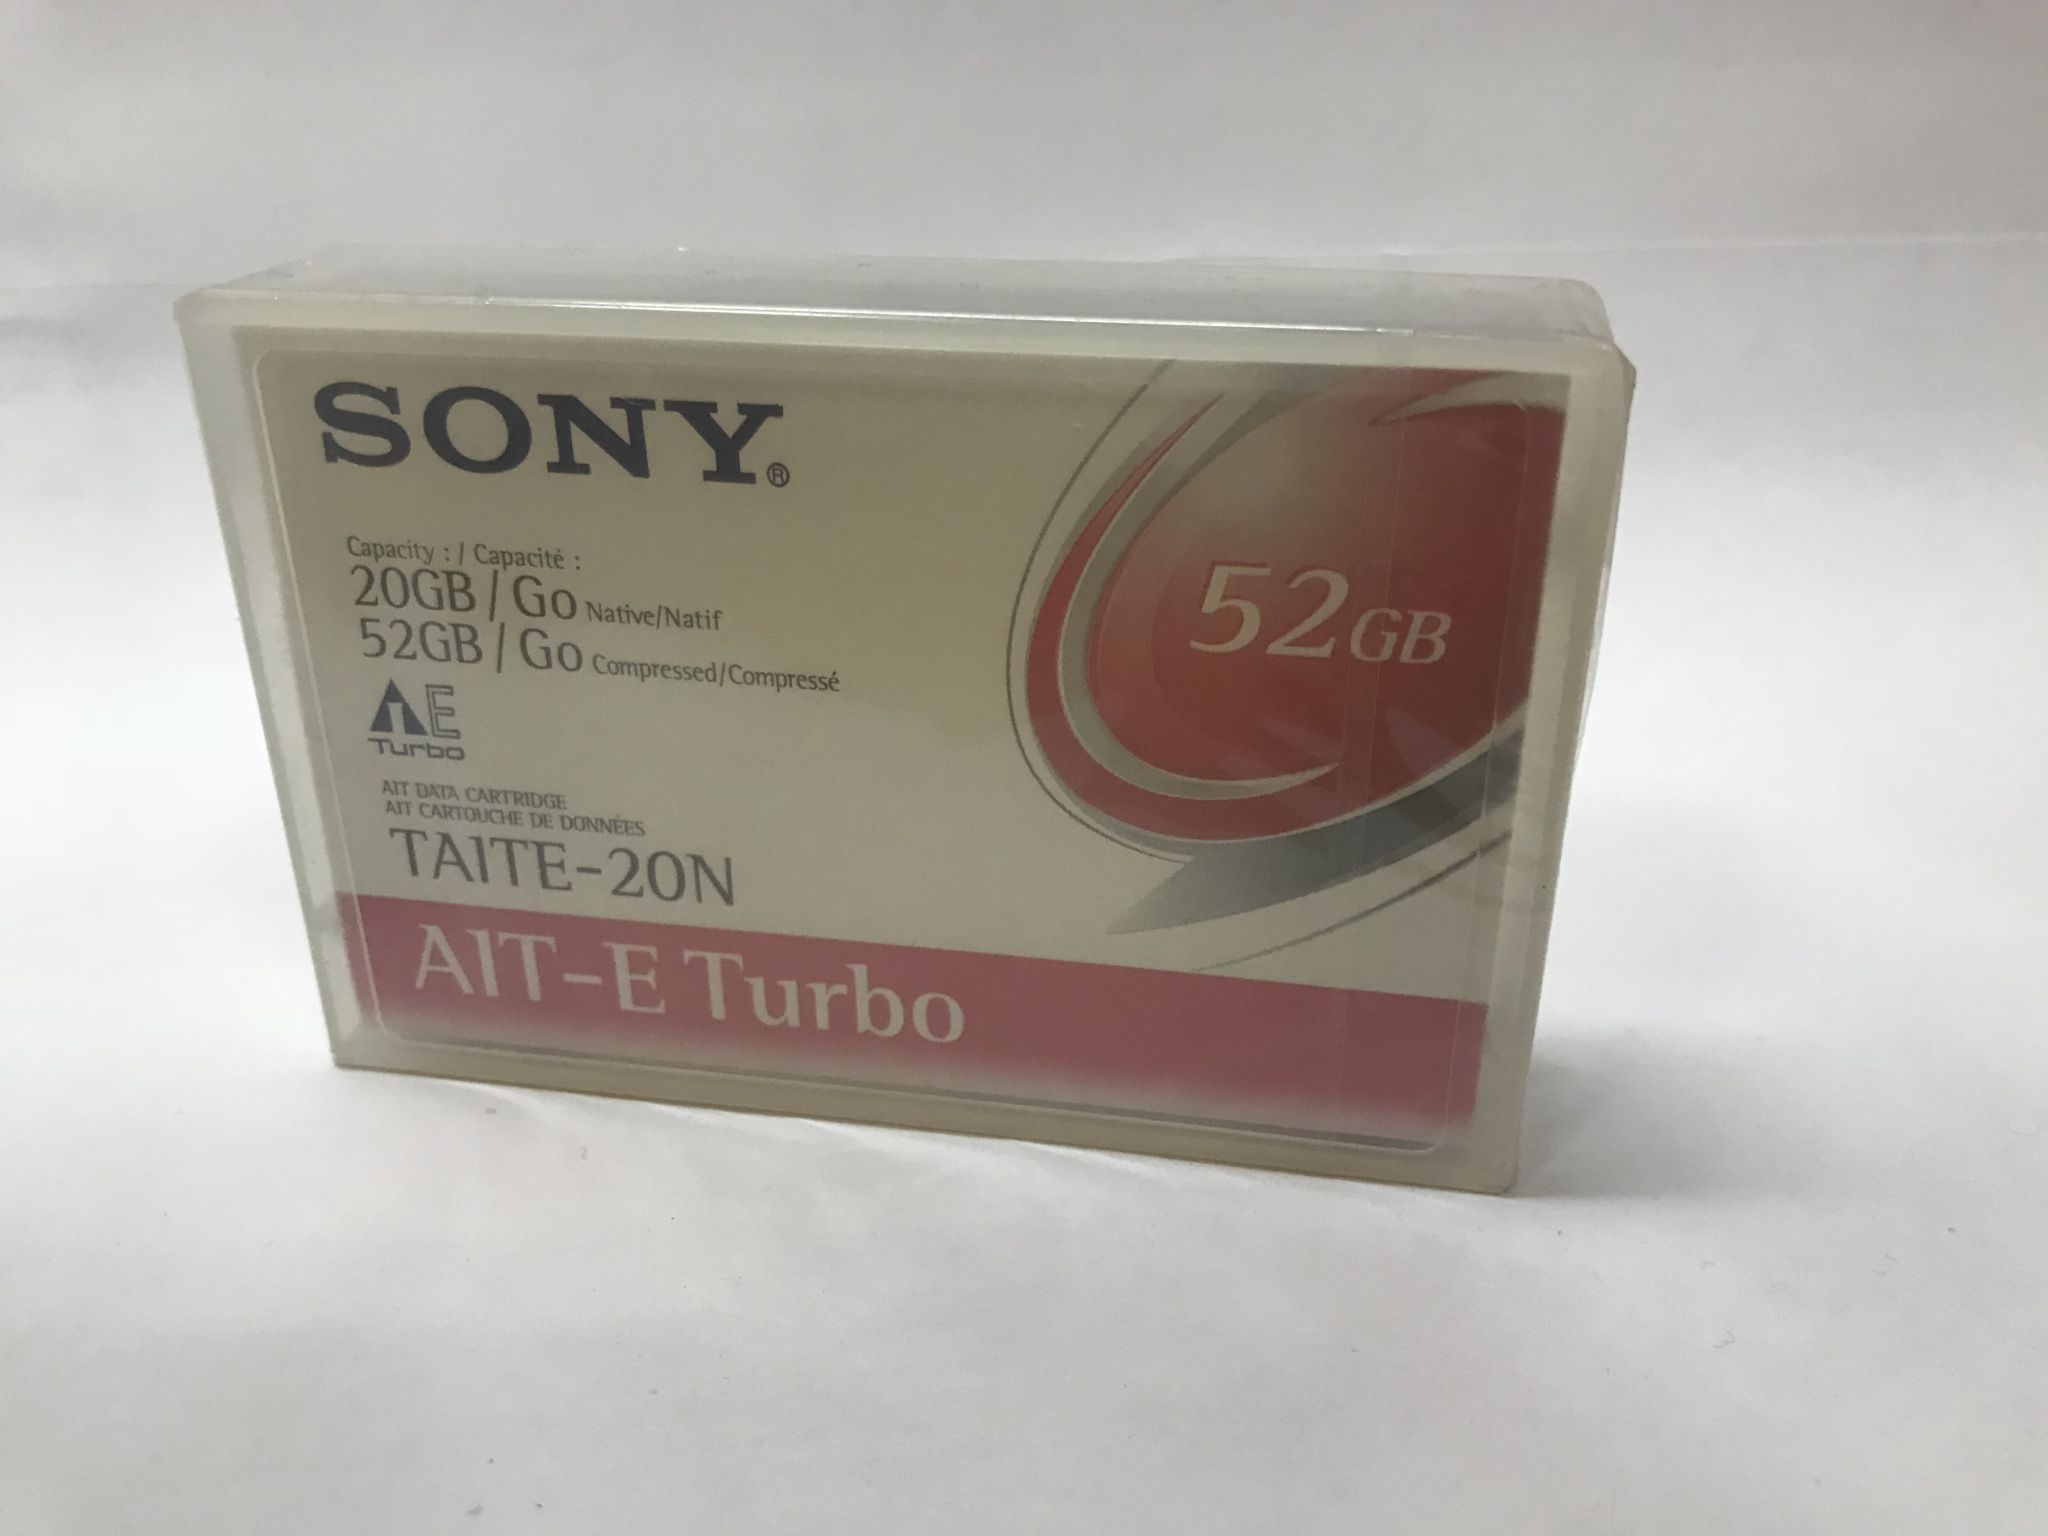 Картридж SONY TAITE-20N  AITE TURBO 20GB